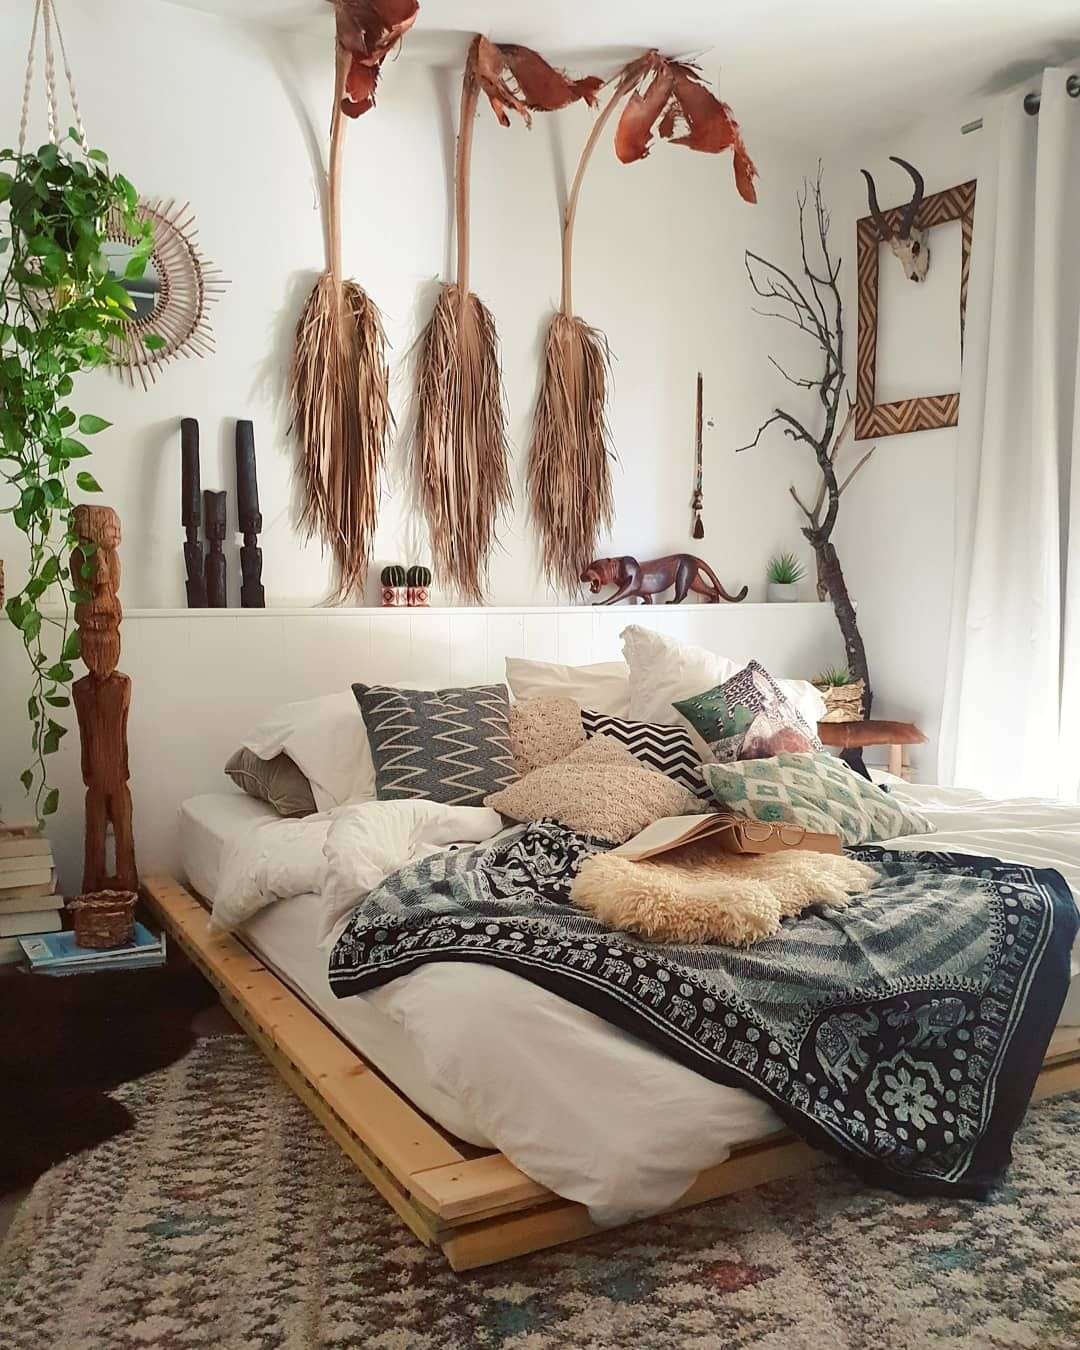 Zebodeko On Instagram Remember These Dried Palm Leaves Tomorrow I Will Use Some Fresh Ones Isit Is Bohemian Bedroom Design Home Decor Bedroom Design